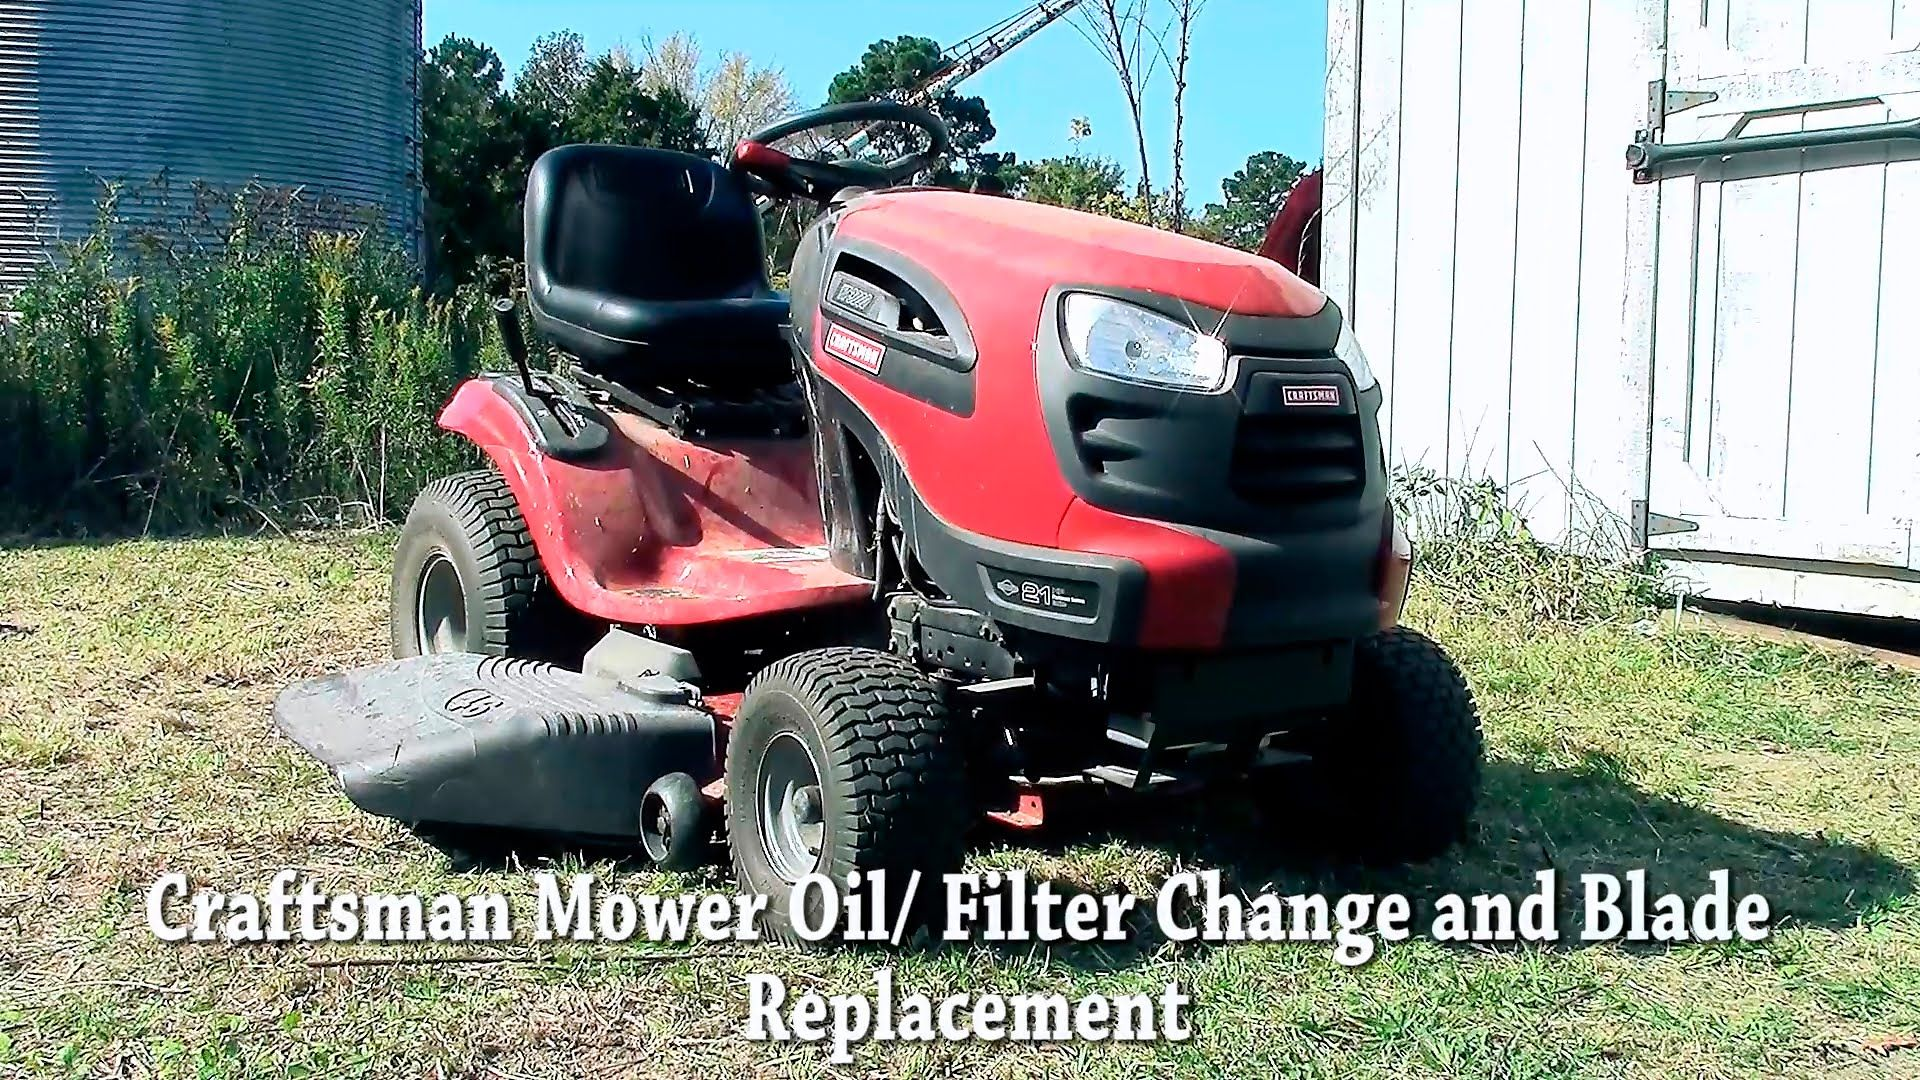 riding mower oil filter change and blade replacement. Black Bedroom Furniture Sets. Home Design Ideas